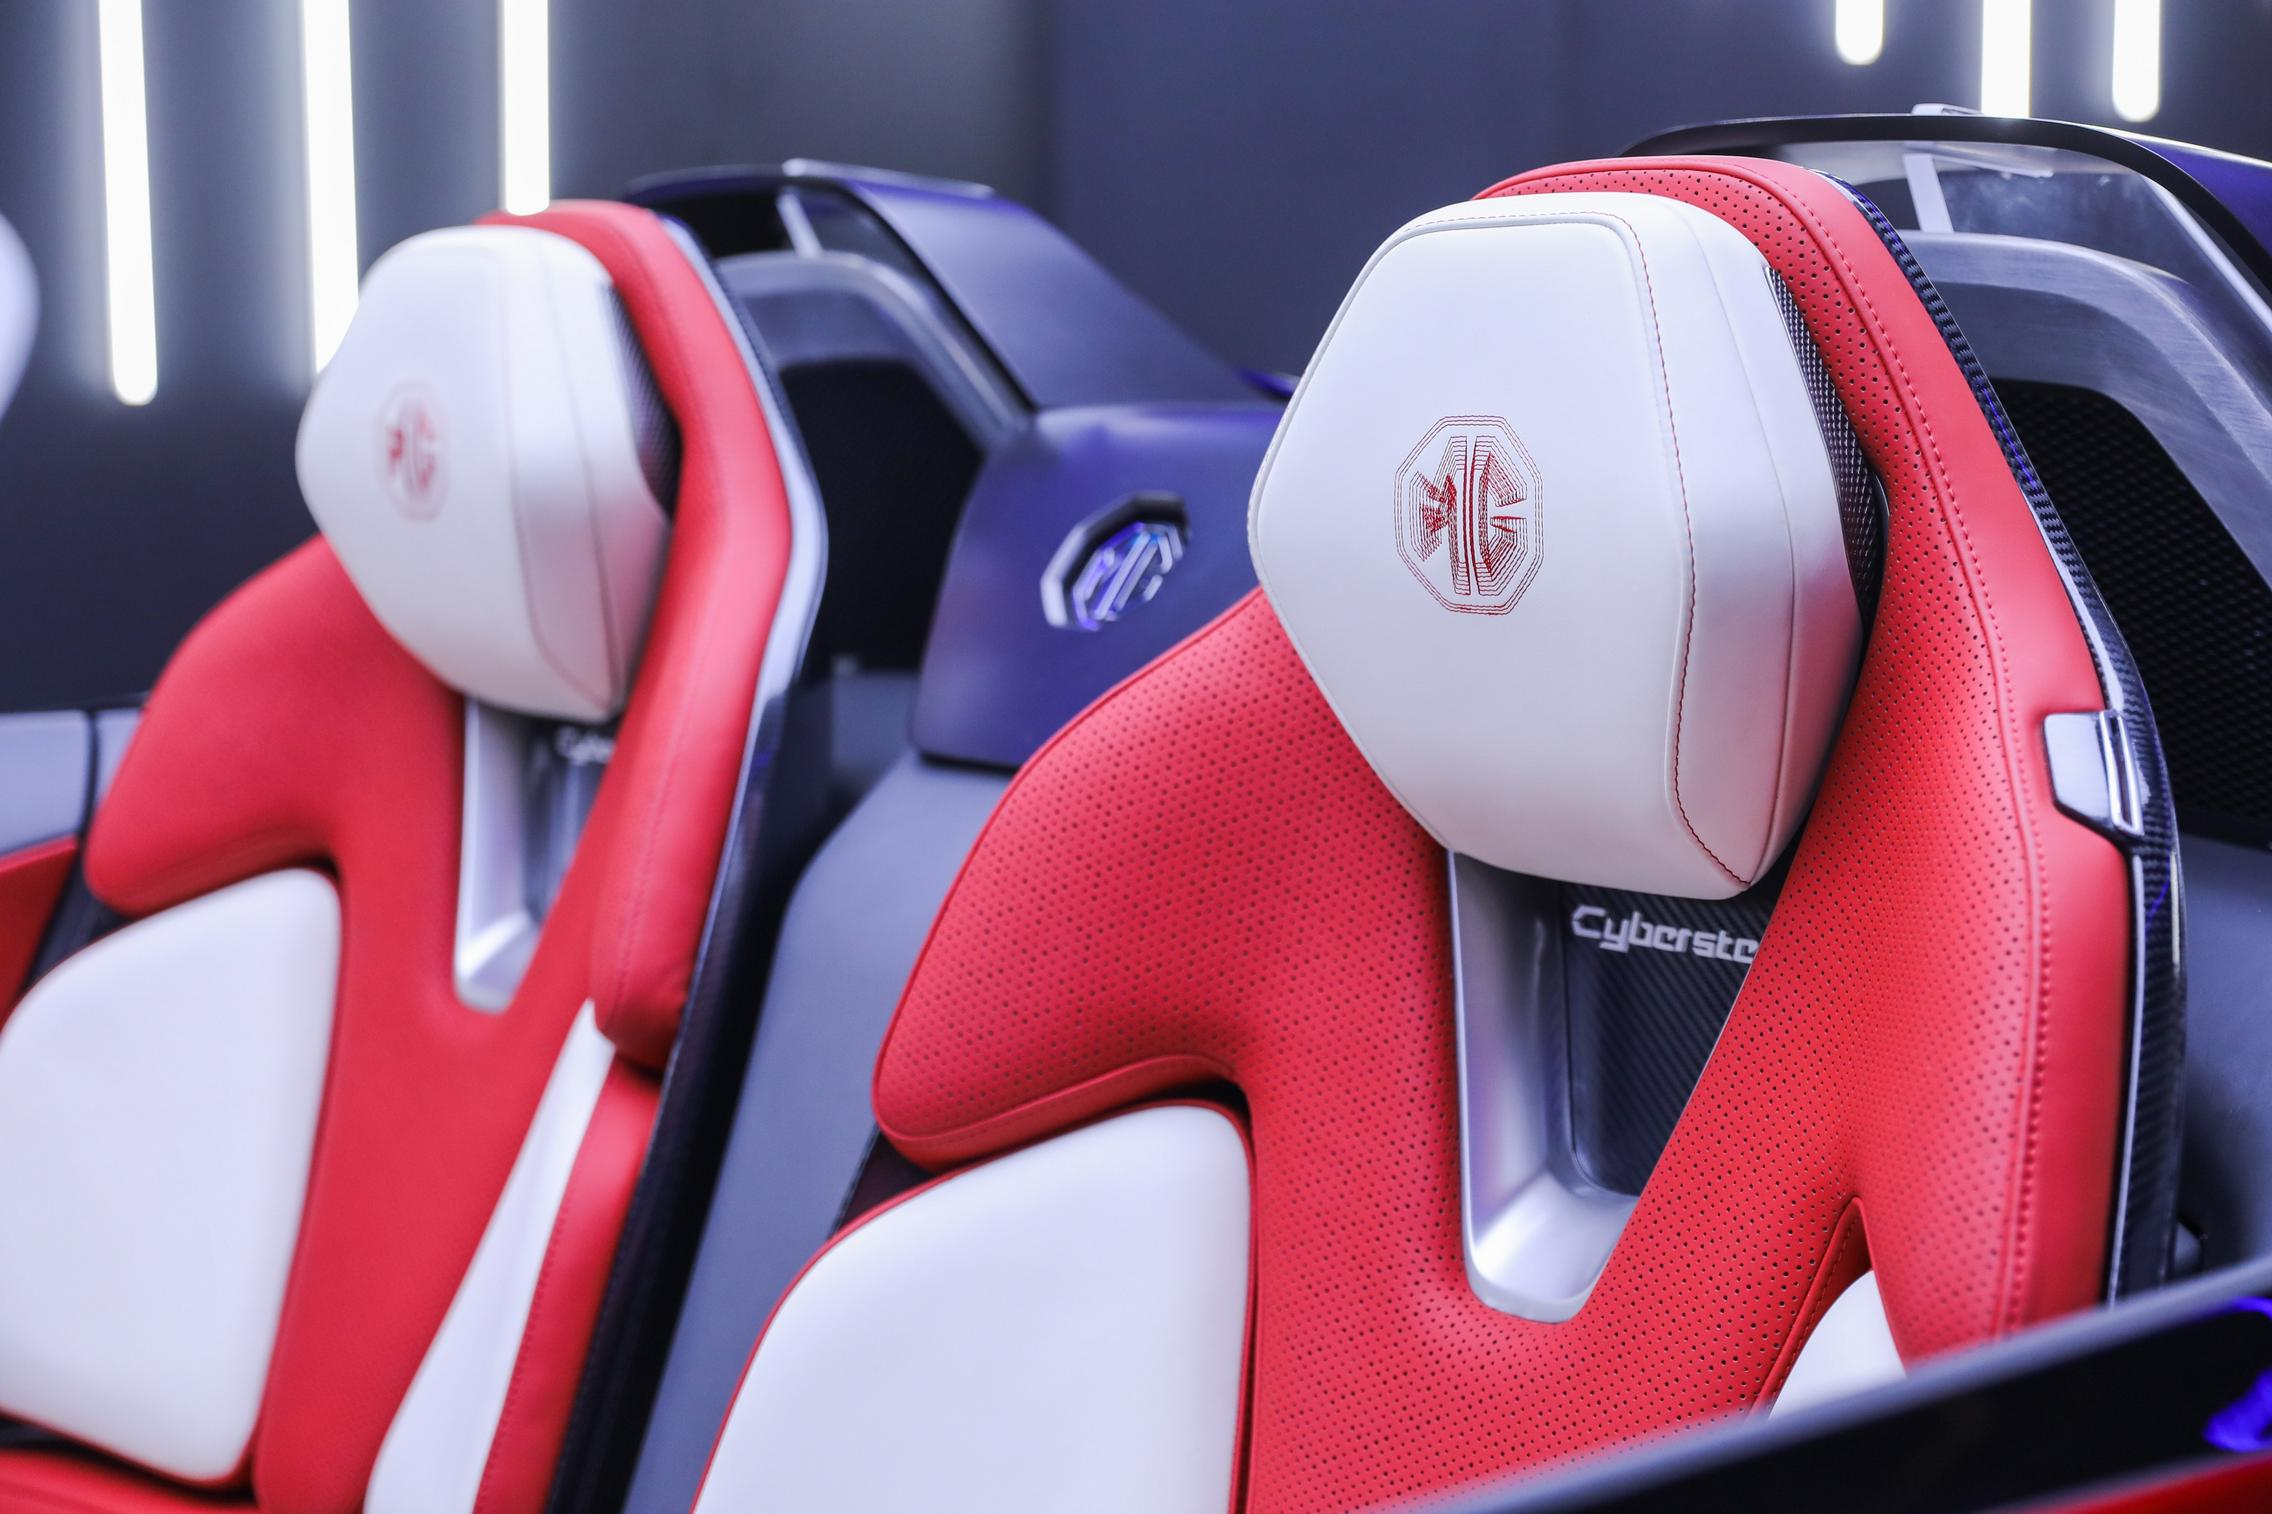 MG Cyberster seats